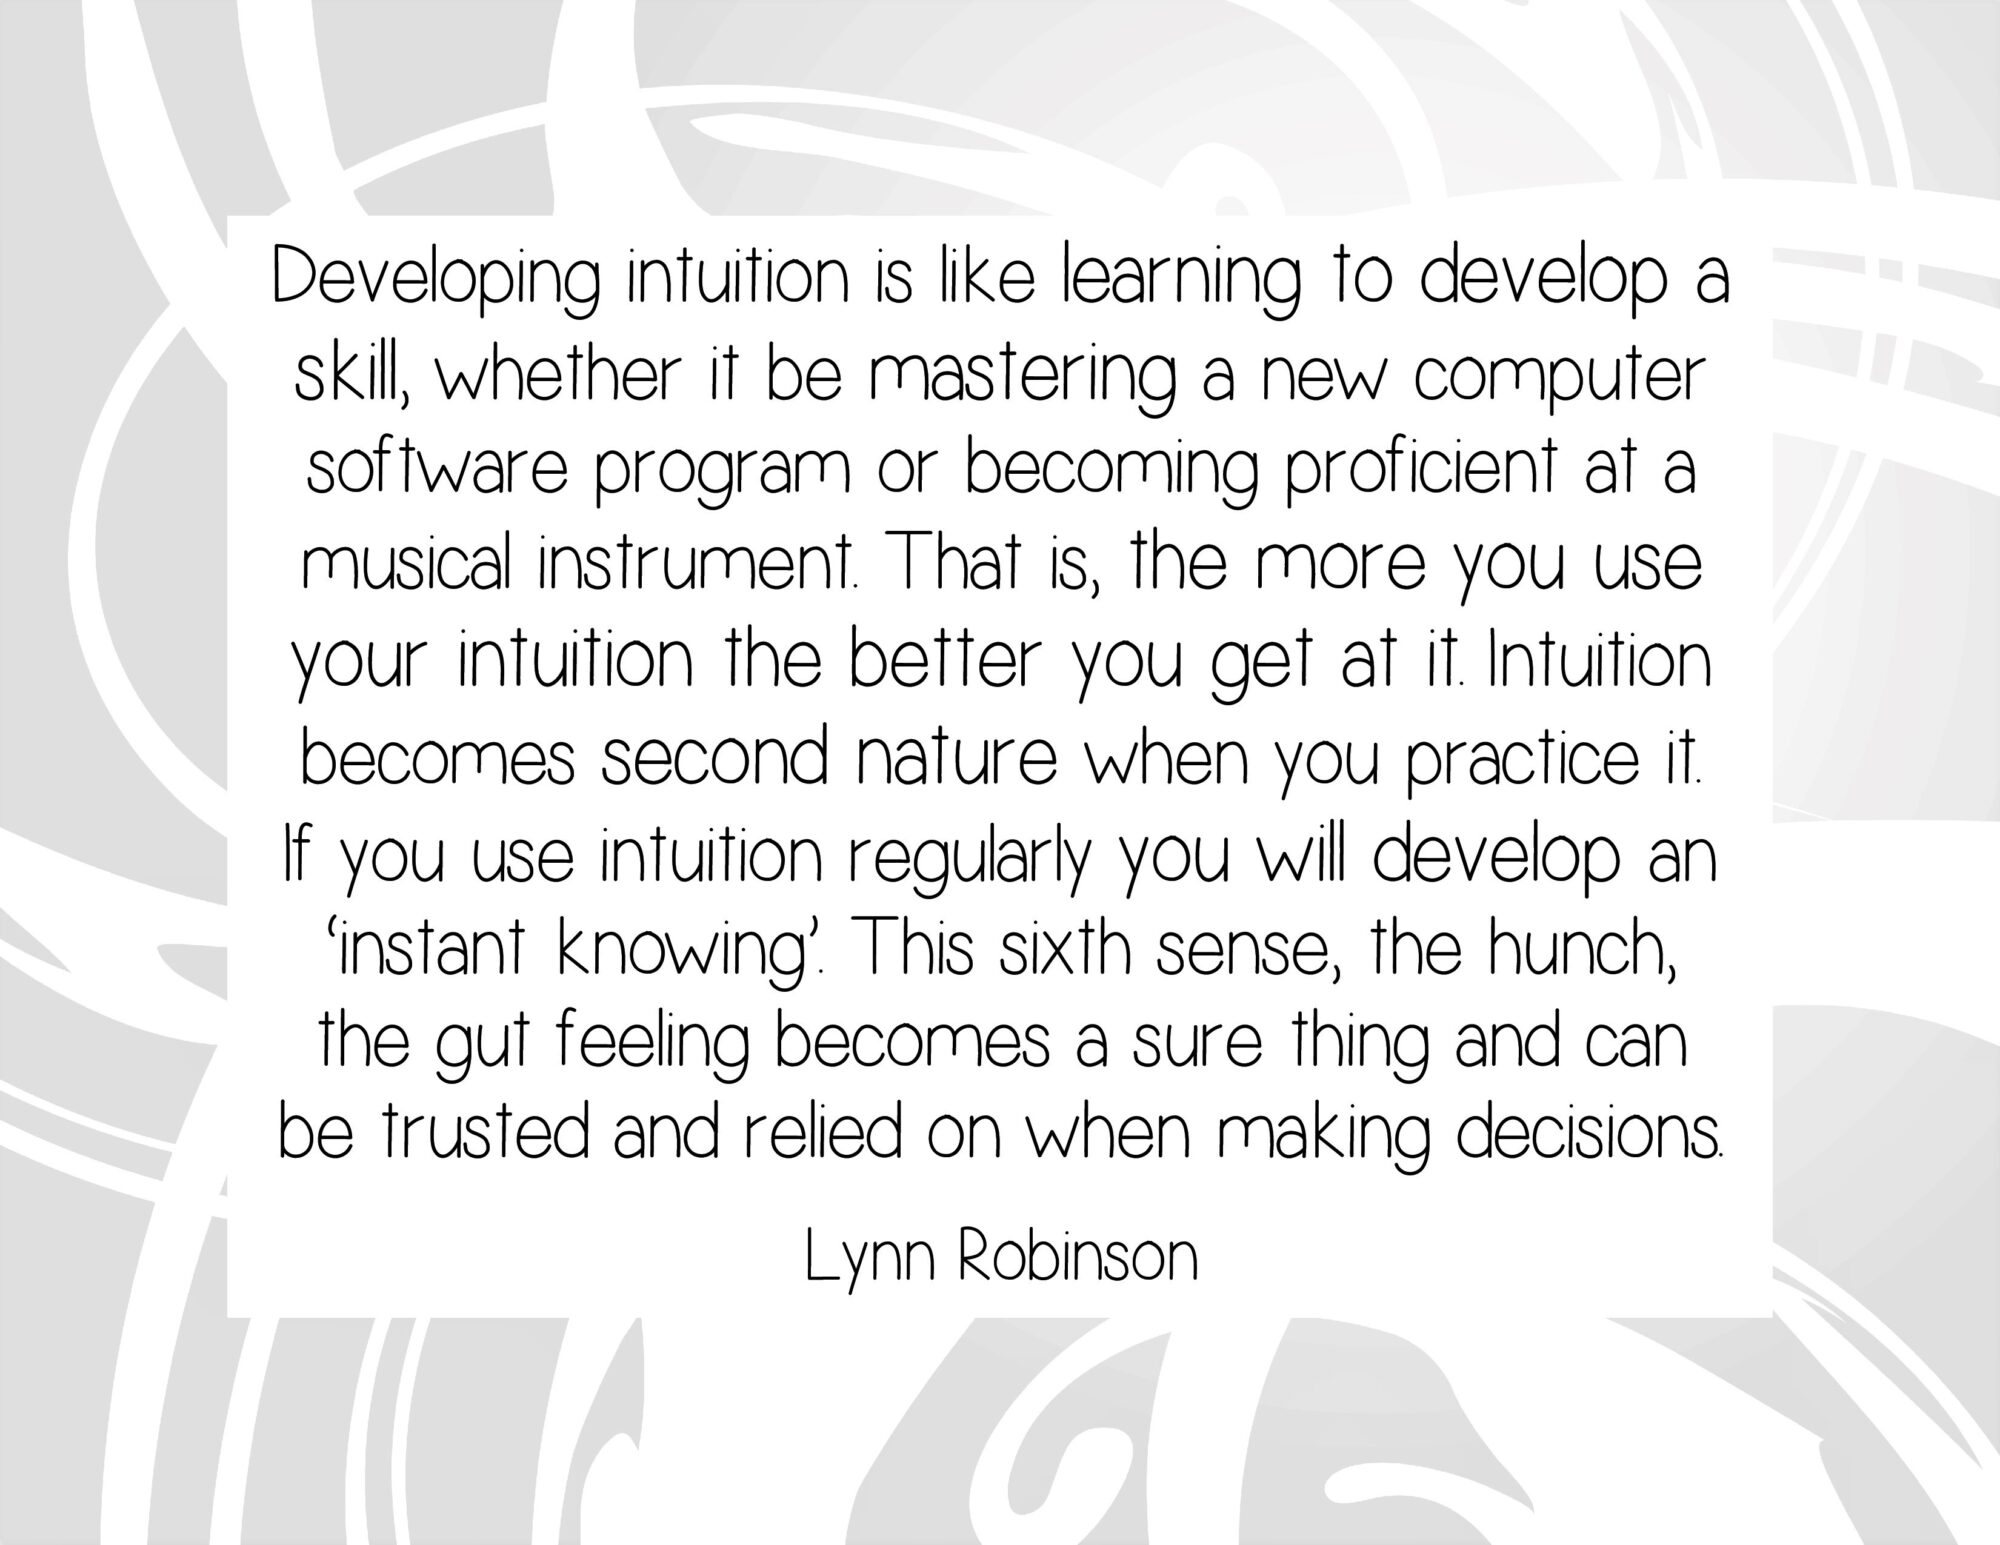 Developing Intuition is Like Learning to Develop